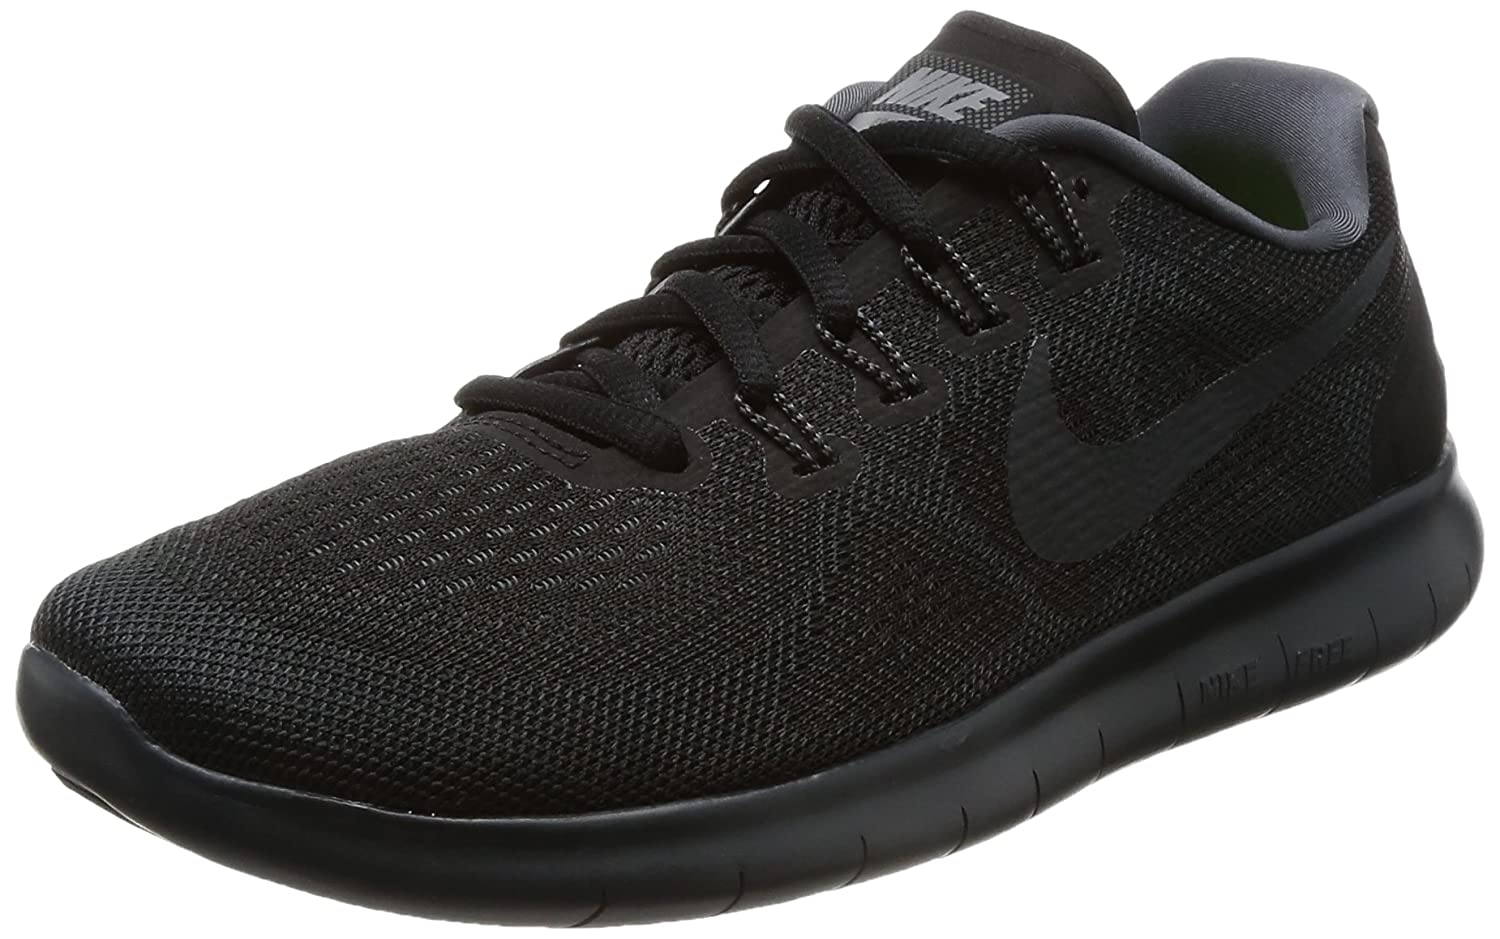 NIKE Women's Free RN 2017 Running Shoe B01K0NR6S0 6.5 B(M) US|Black/Anthracite Dark Grey